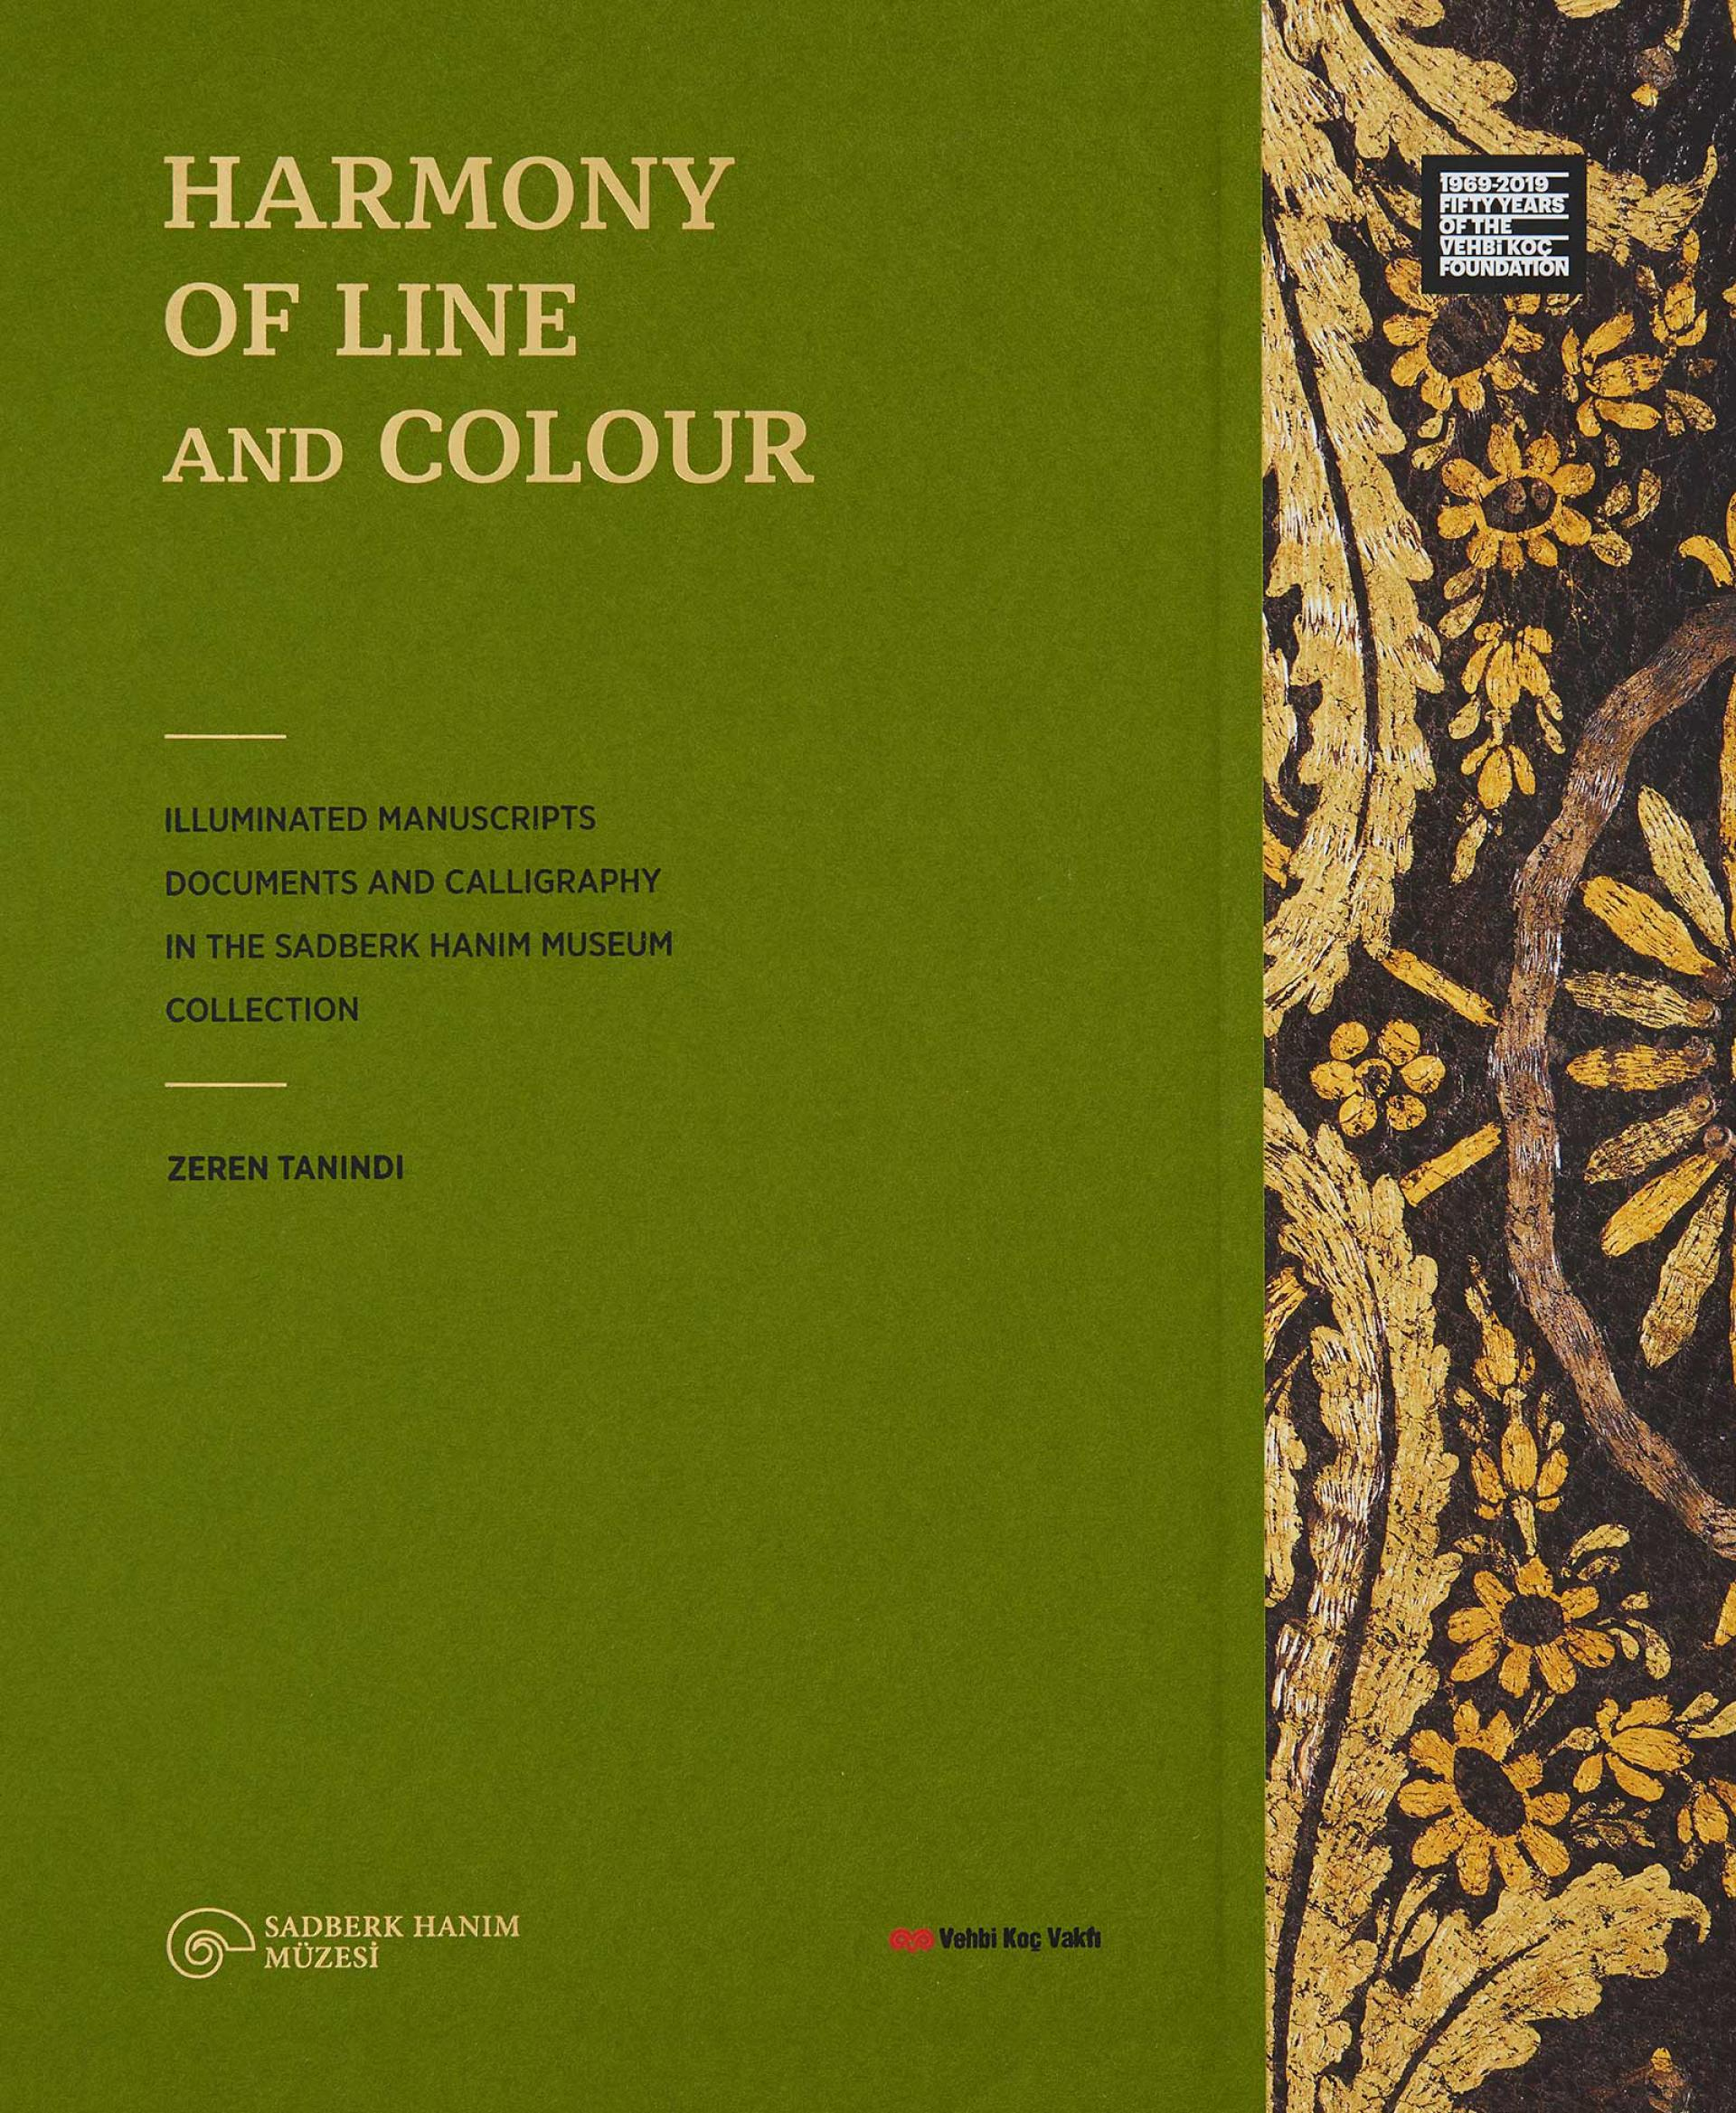 Harmony of Line and Colour - Illuminated Manuscripts, Documents and Calligraphy in the Sadberk Hanım Museum Collection - BOOKS - Sadberk Hanım Museum